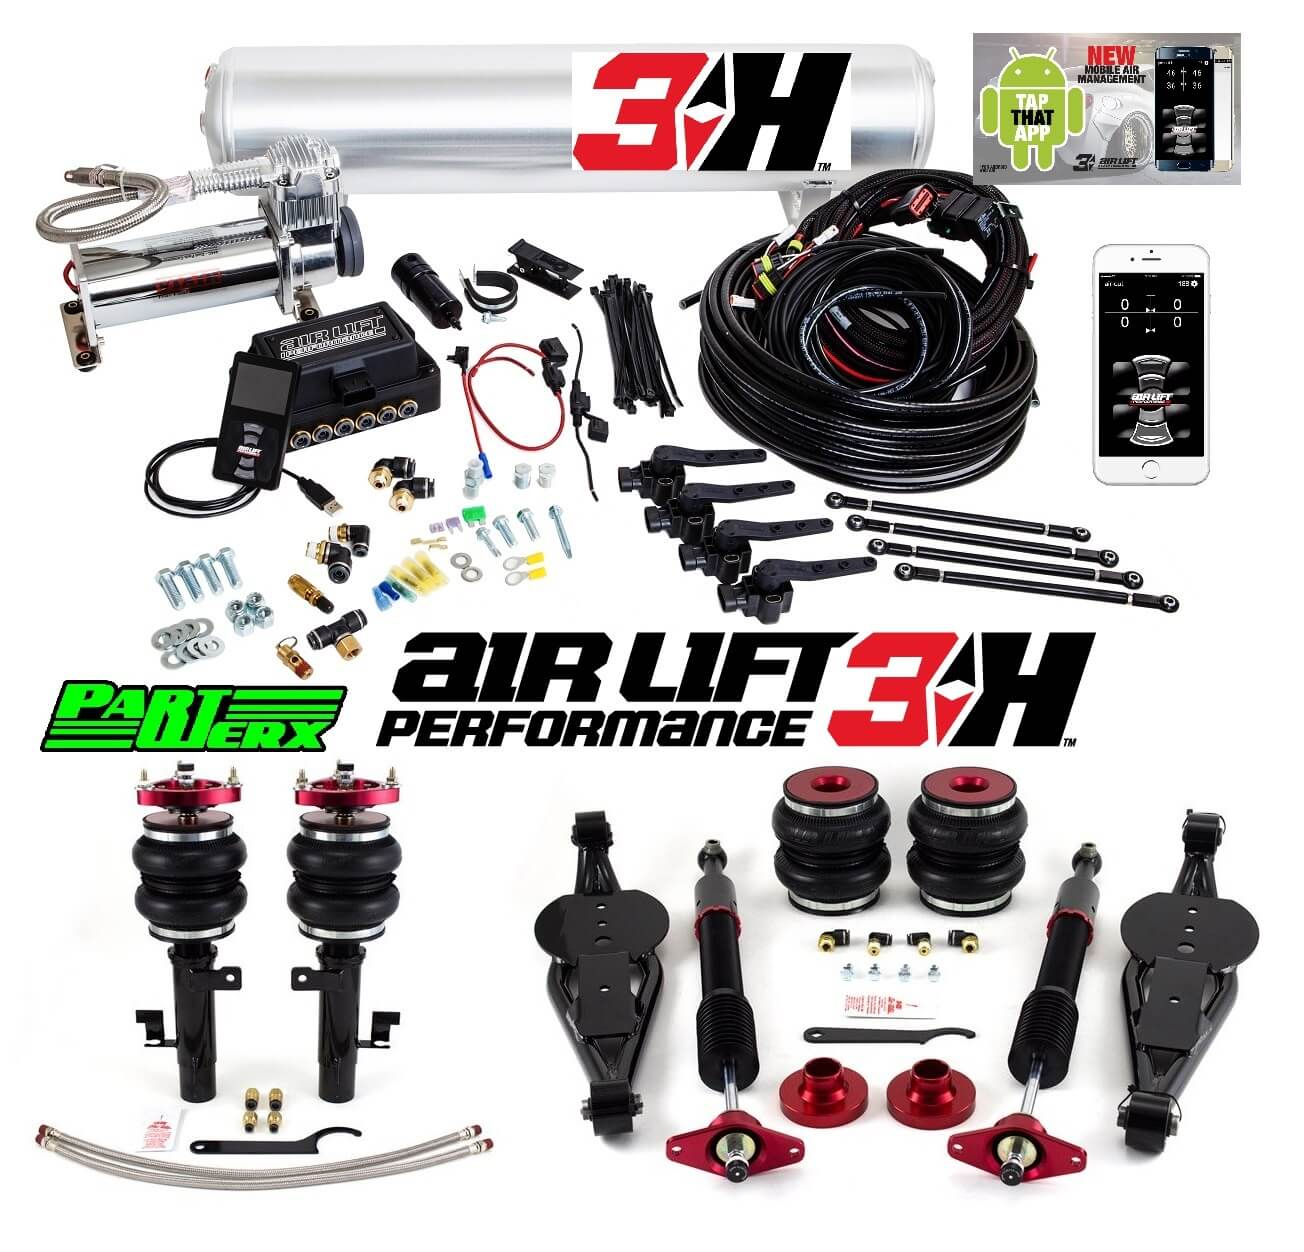 Ford Focus ST RS Air Lift 3H 14 Management + Performance Series Kit